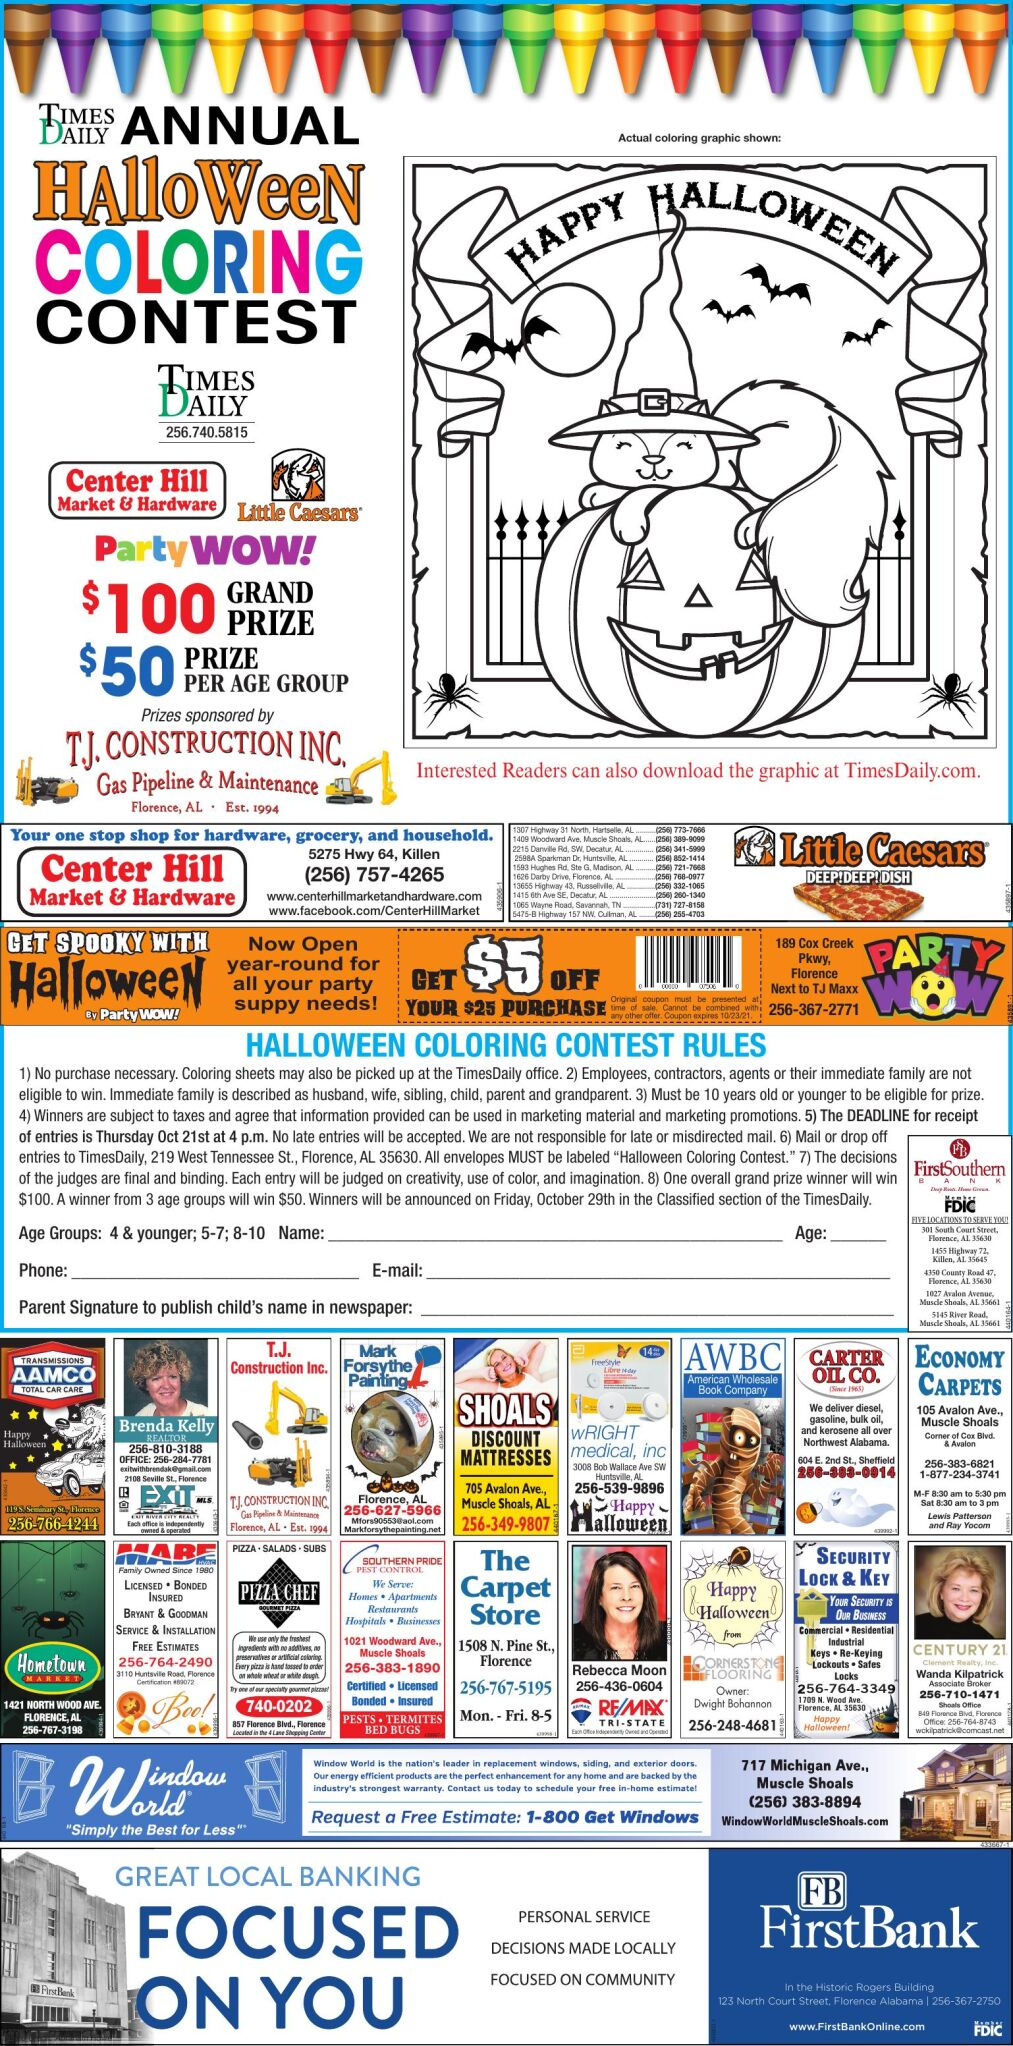 2021 Halloween Coloring Contest